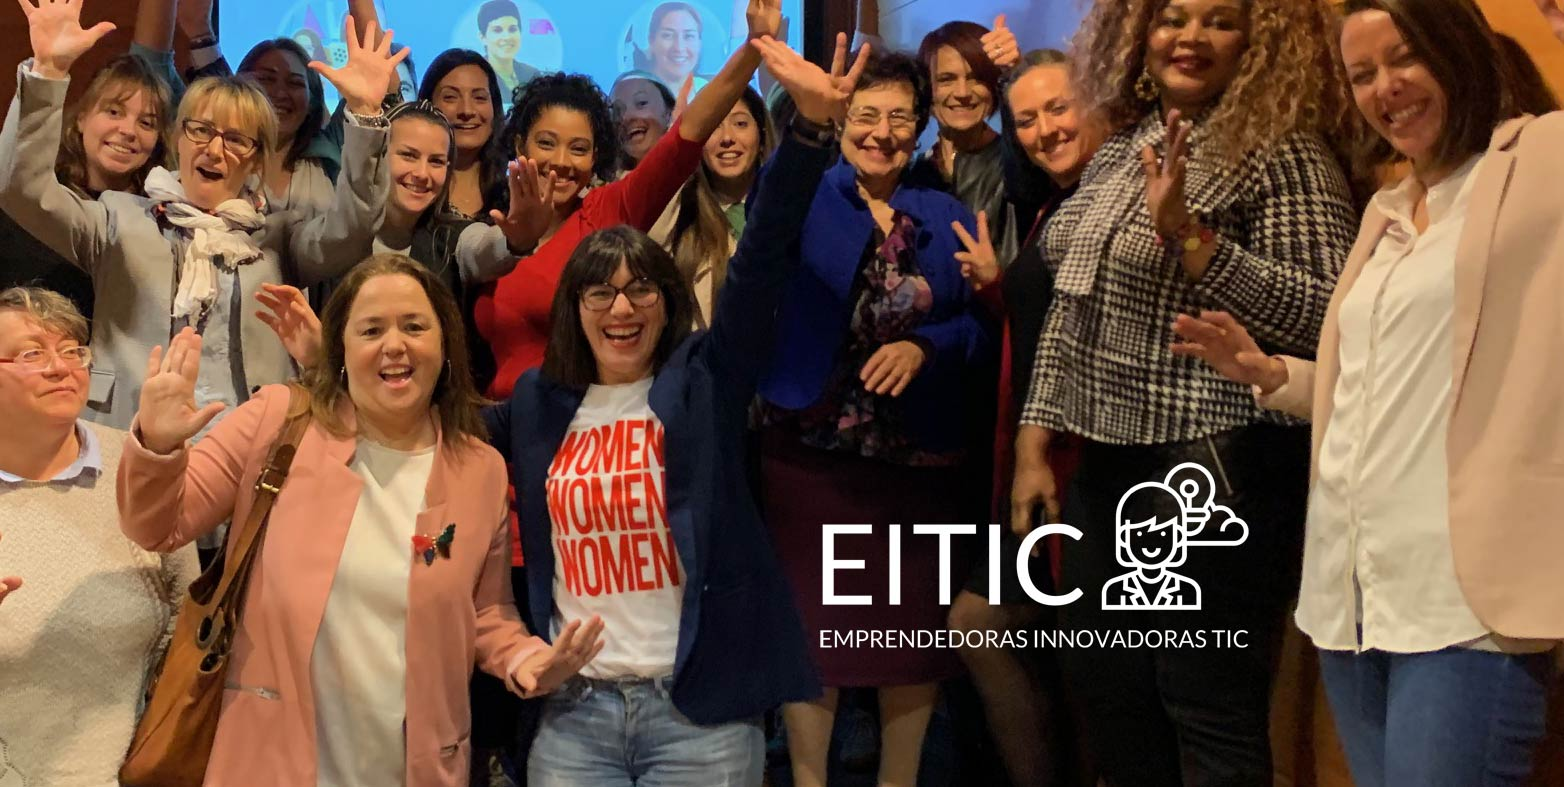 Promoting female entrepreneurship with EITIC pilots